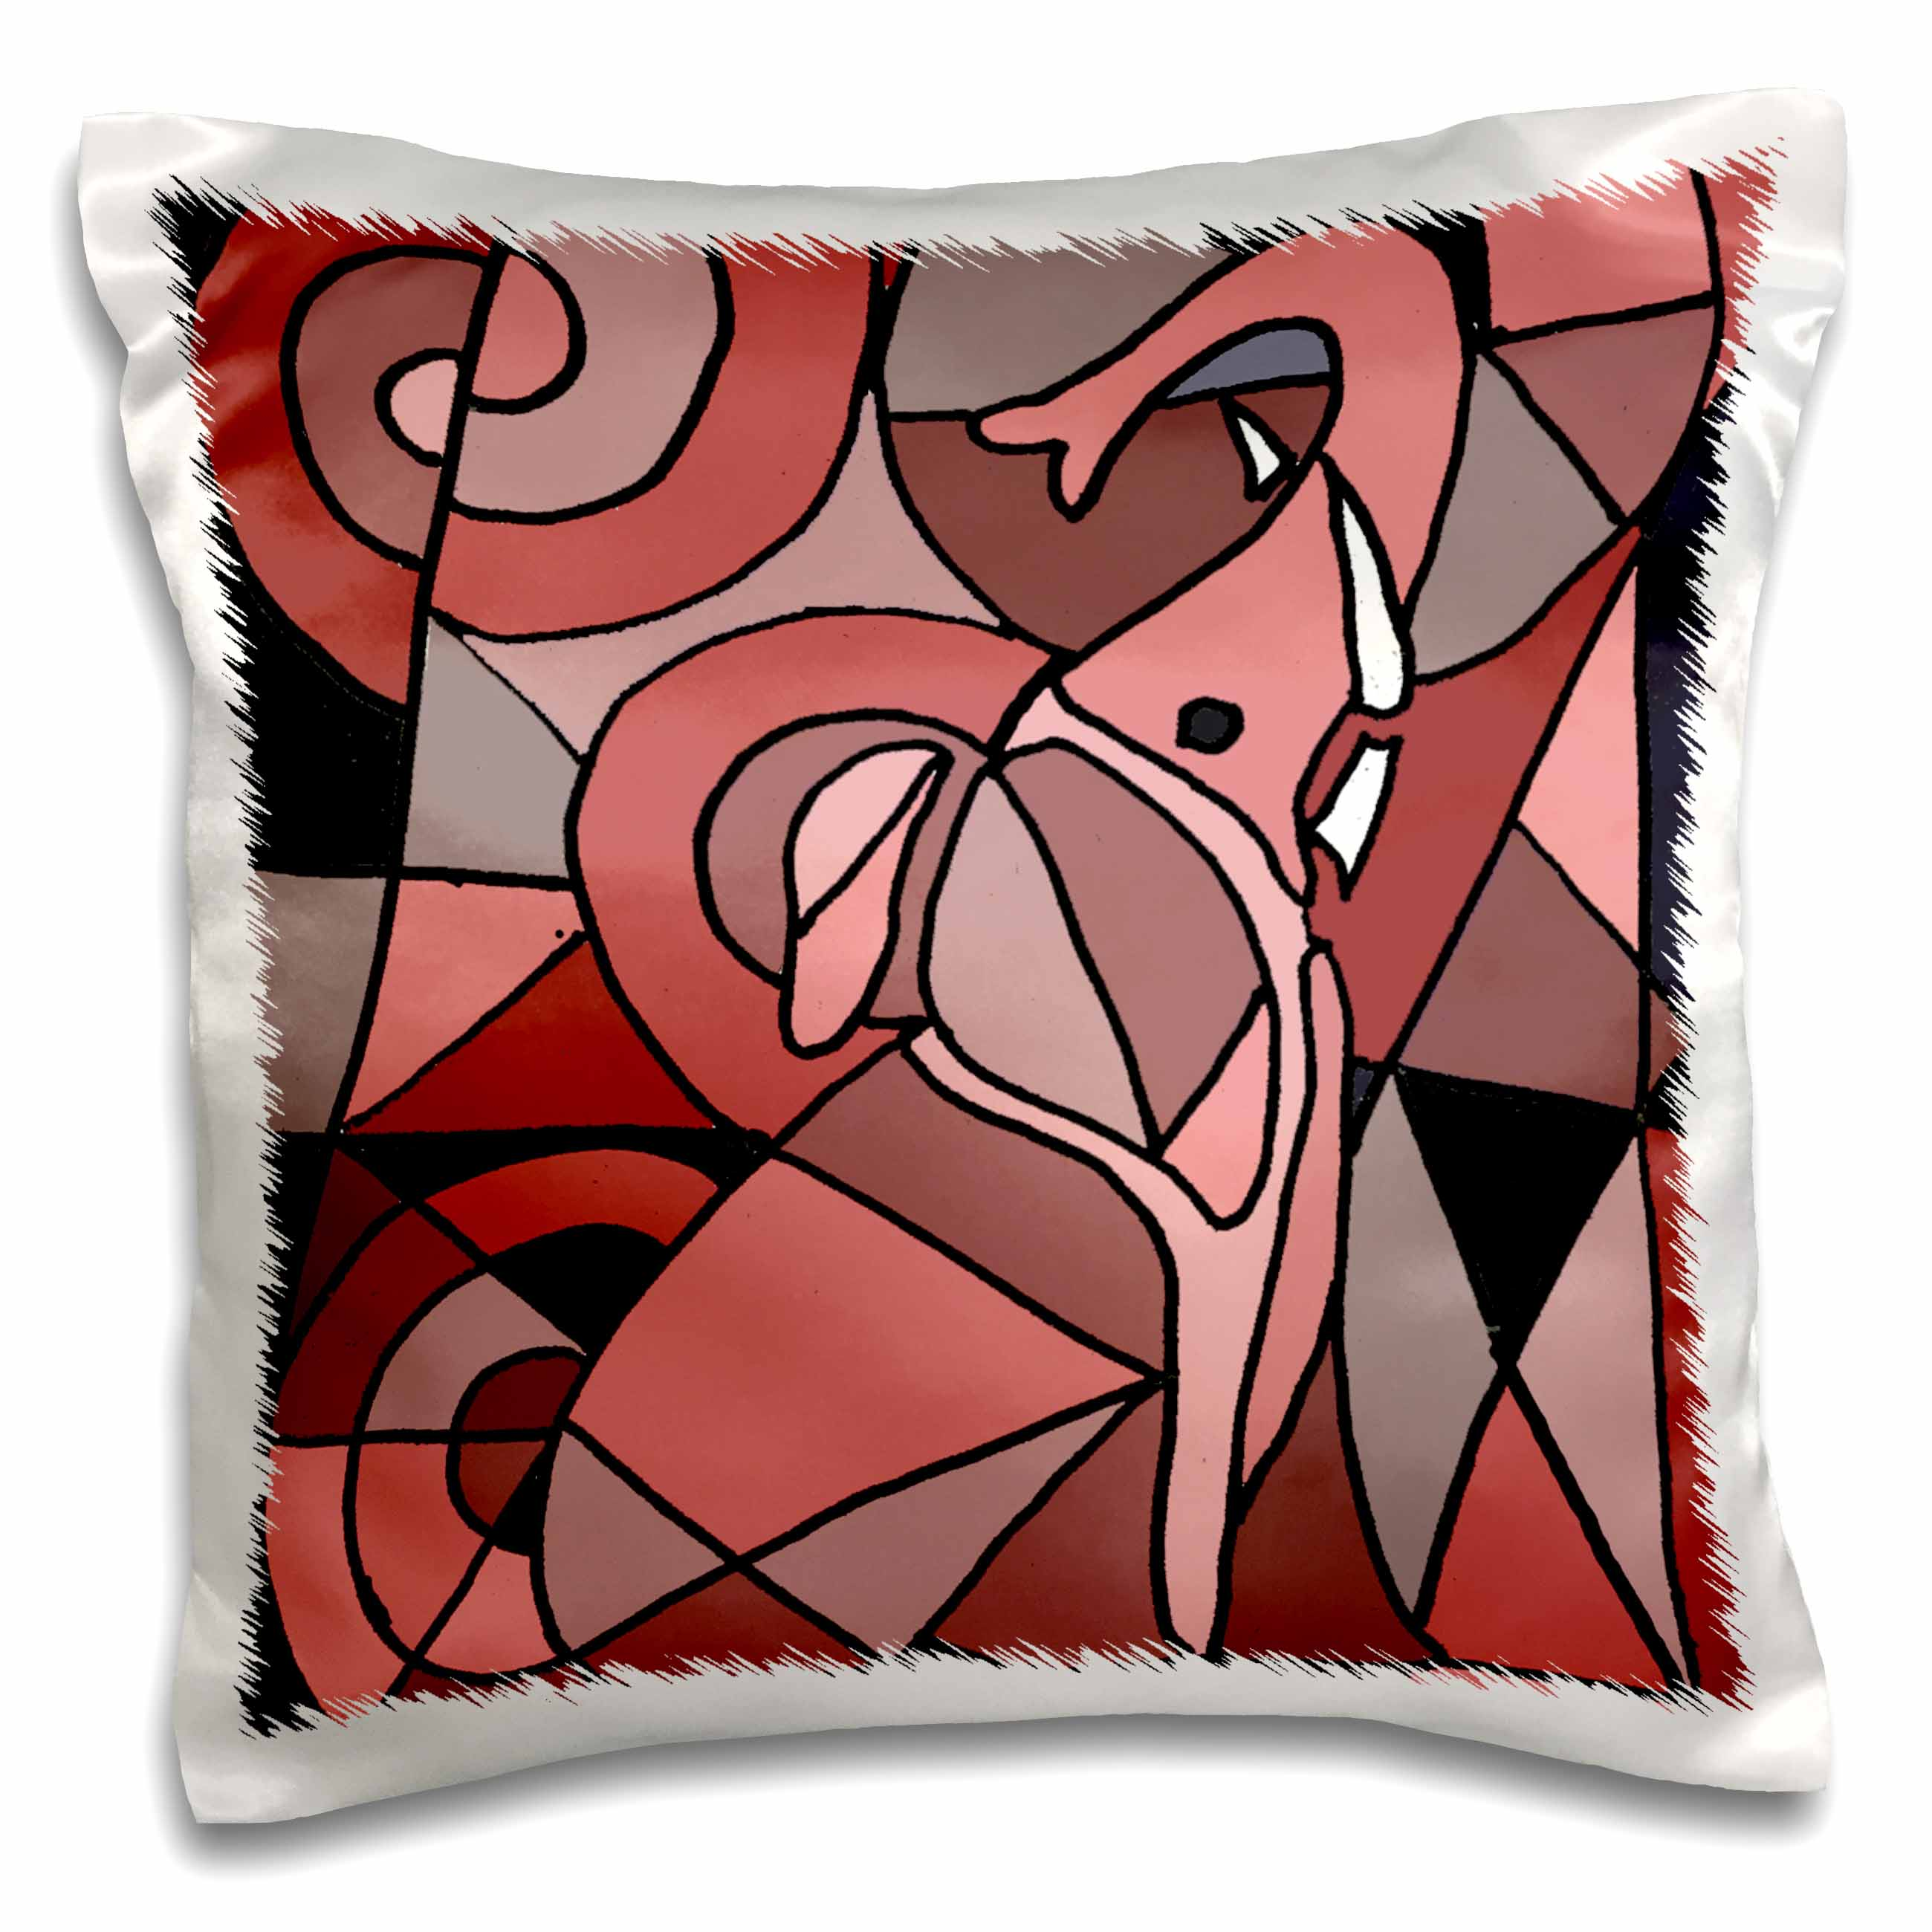 3dRose Fun Pink Elephant Abstract Art Original, Pillow Case, 16 by 16-inch